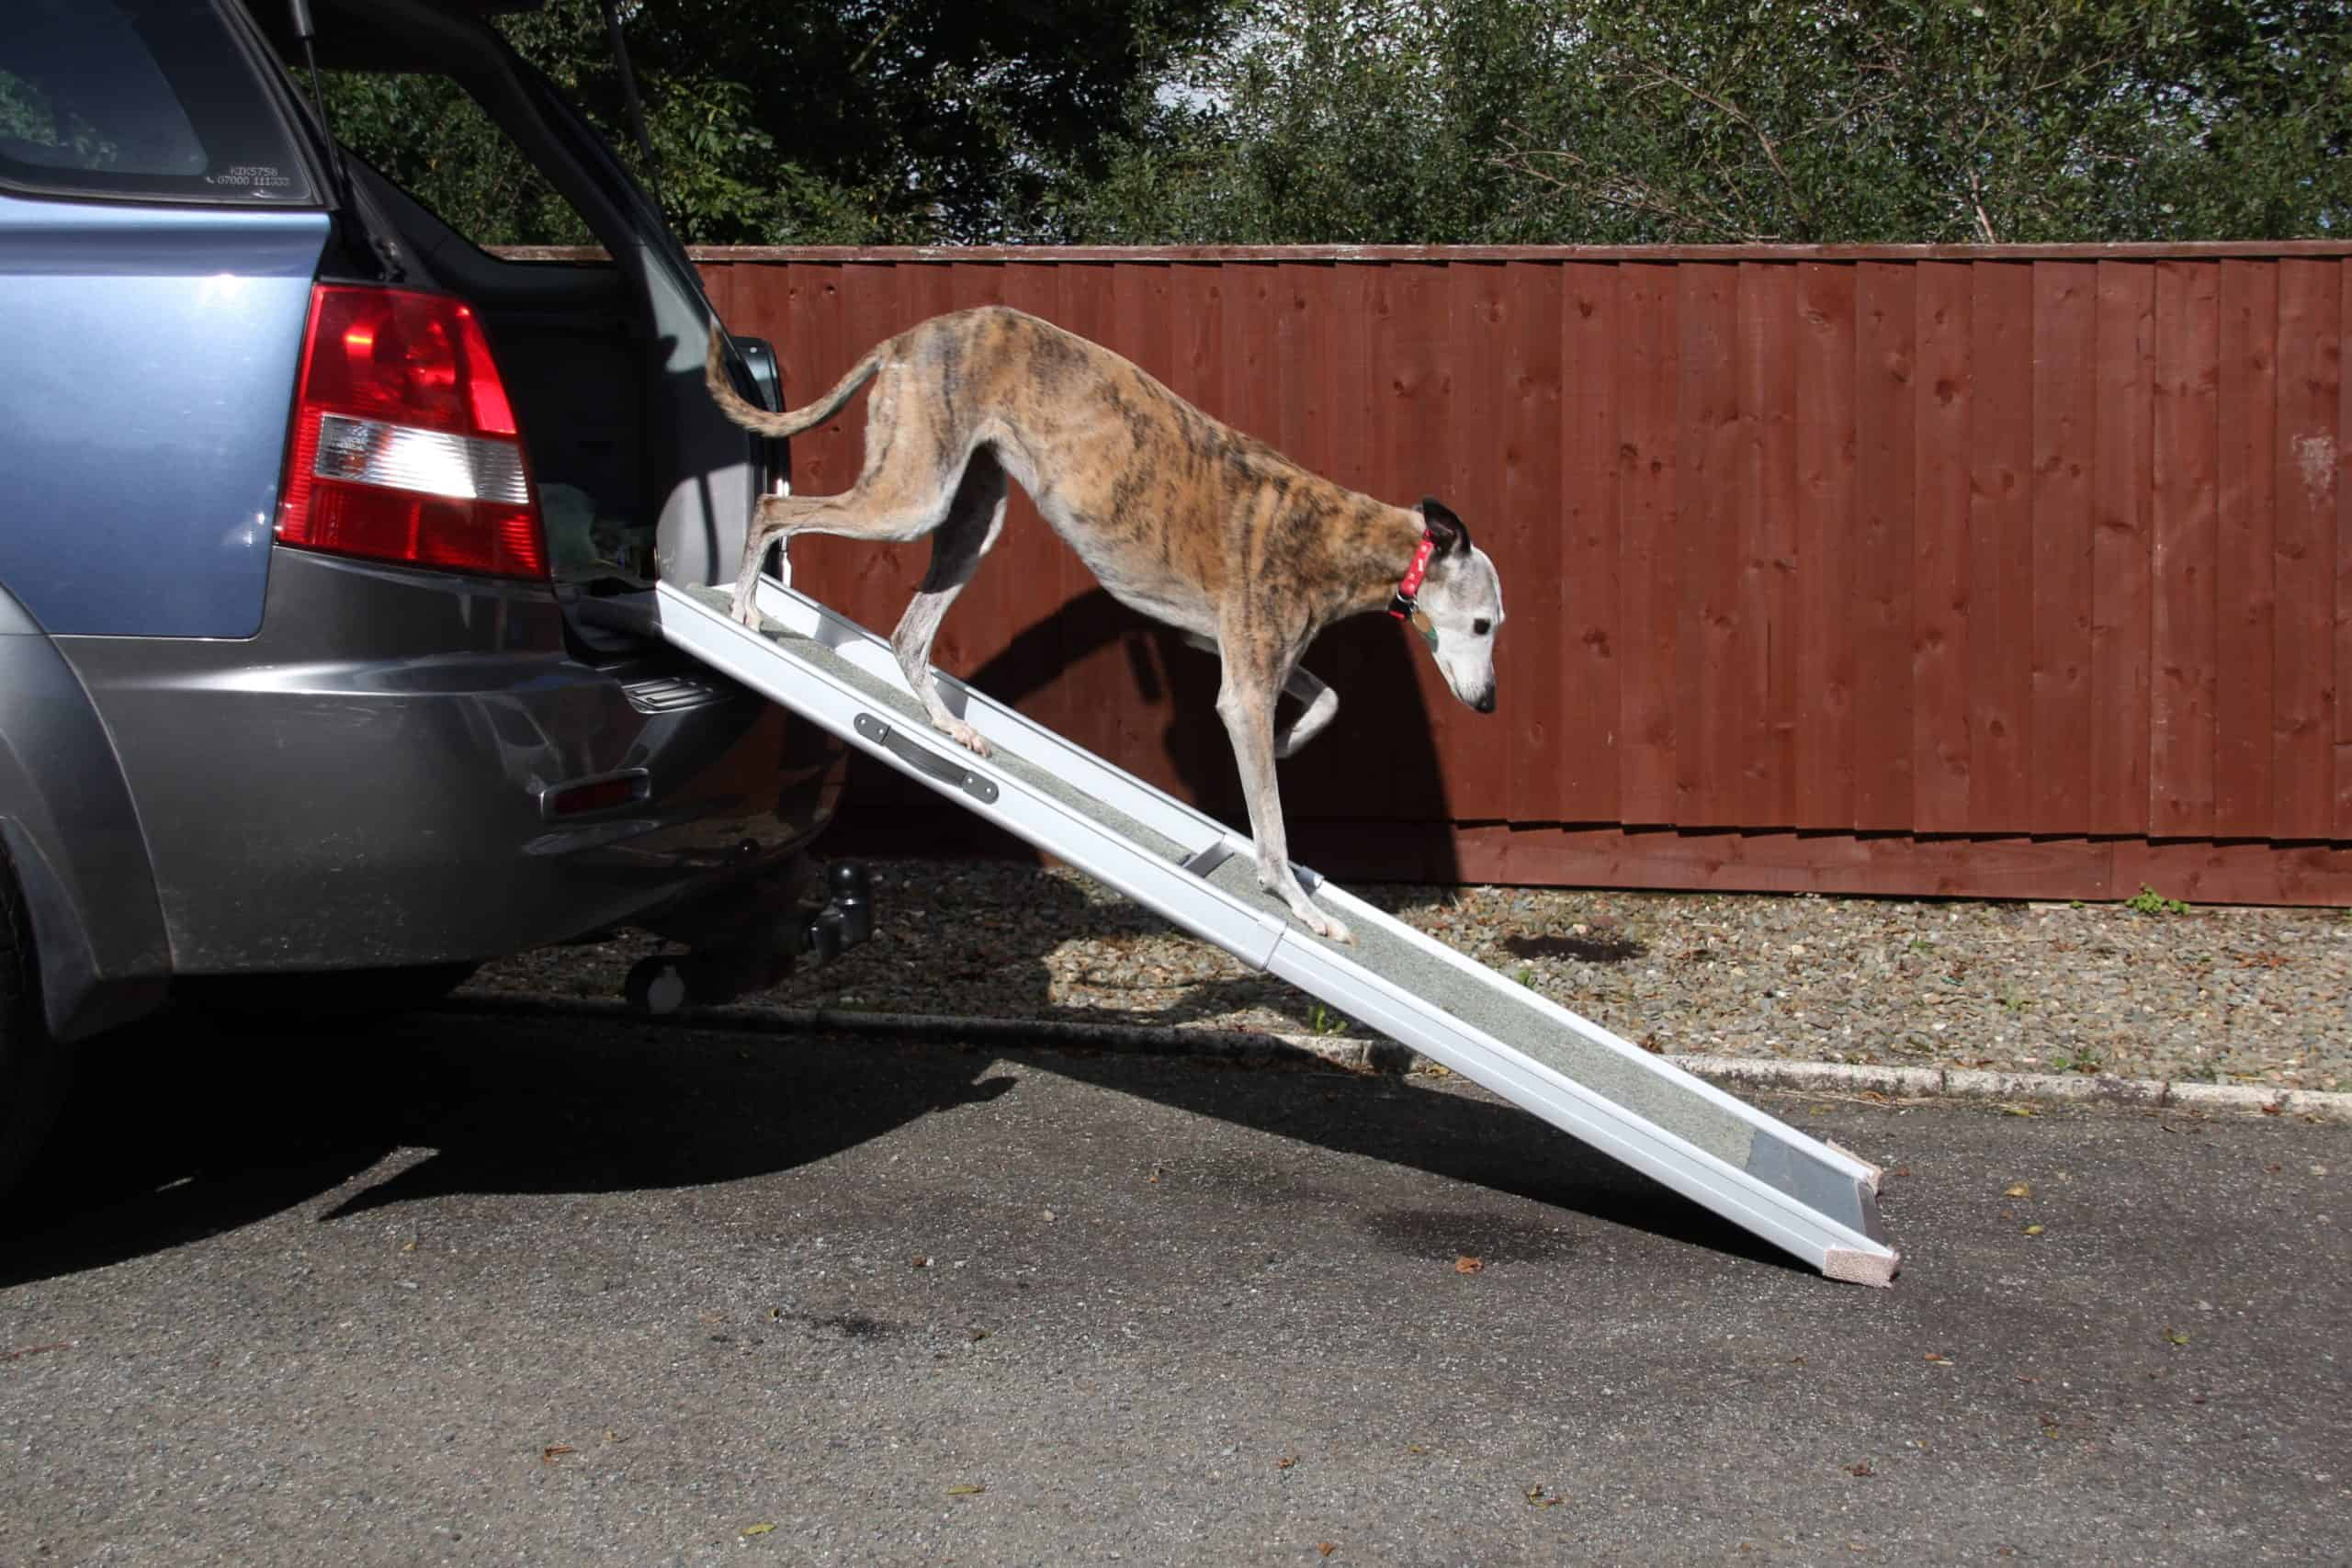 Saluki uses a dog ramp. Some vehicles are too high for your pets to jump, it is also unsafe to lift big dogs, or you will end up frightening or startling them. A dog ramp is a safer option to help your dog easily climb in and out of your vehicle with no problem.